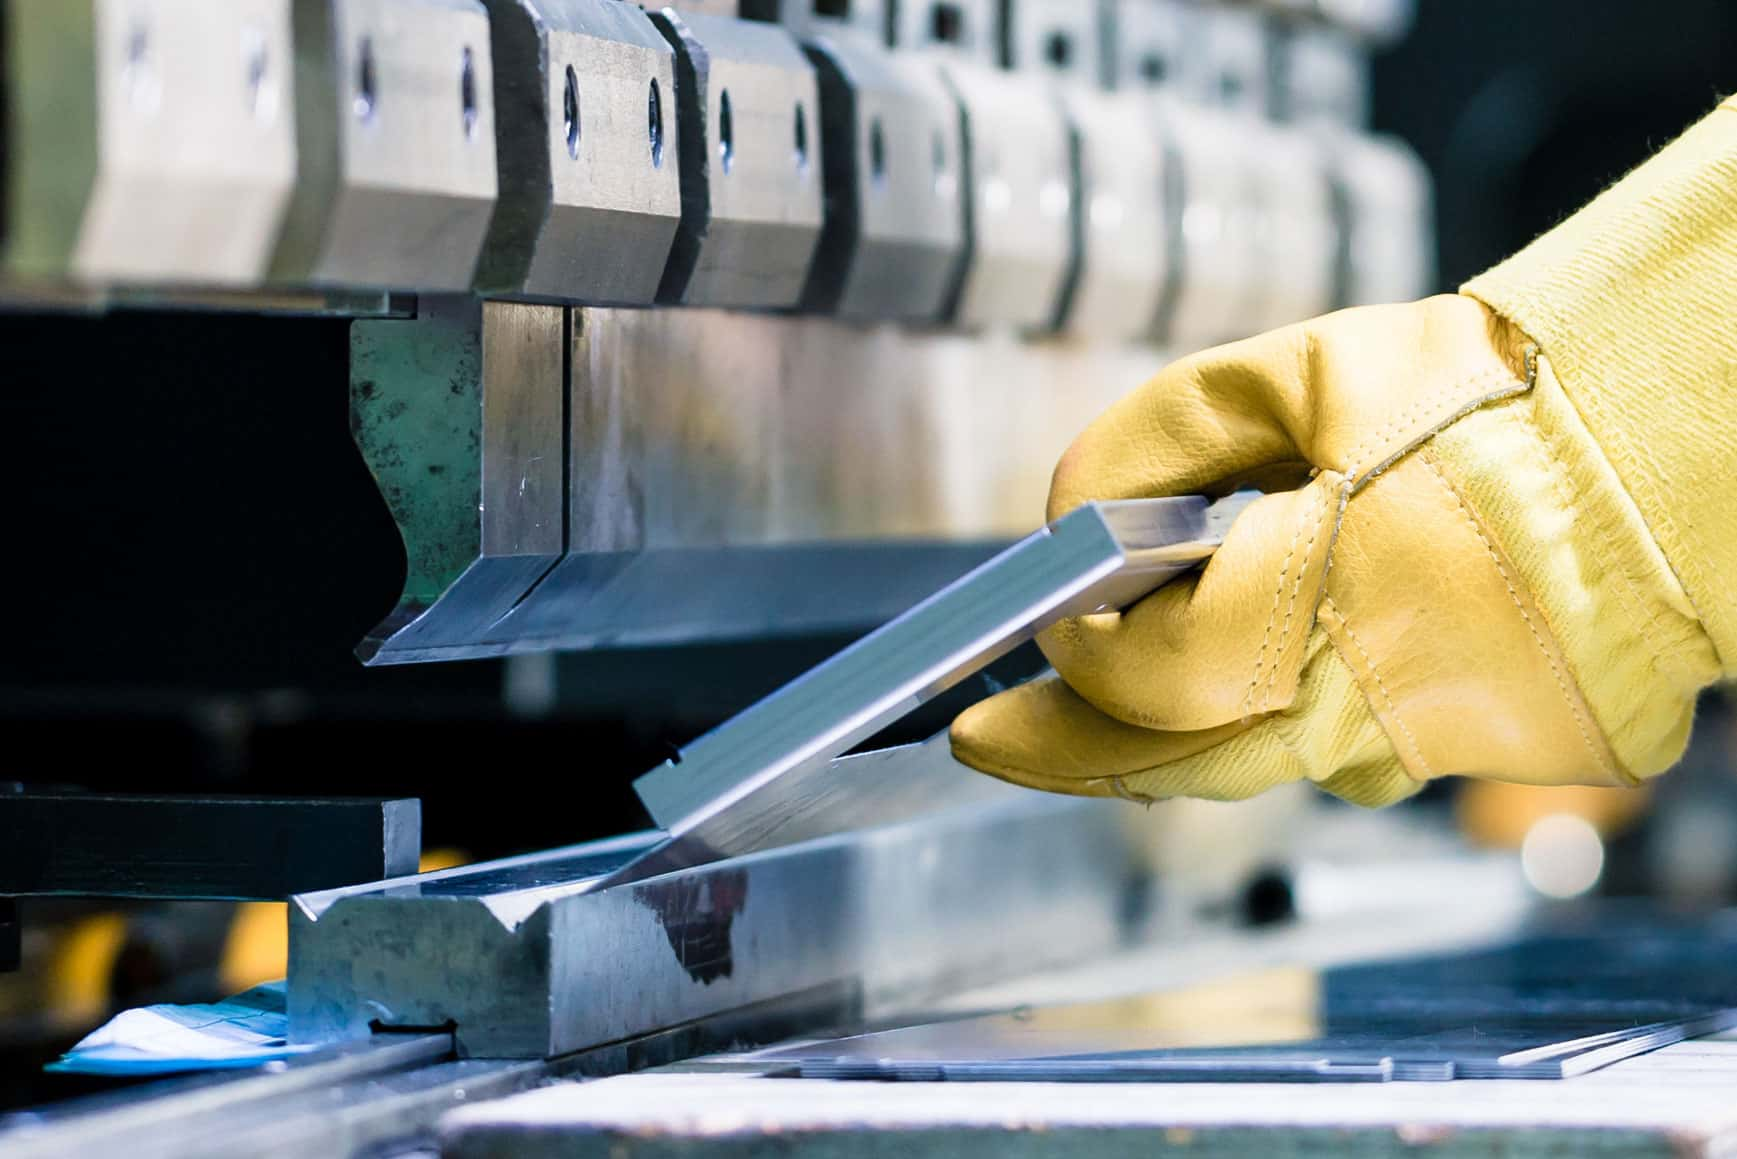 Image of gloved hands holding a piece of metal on a pressbrake